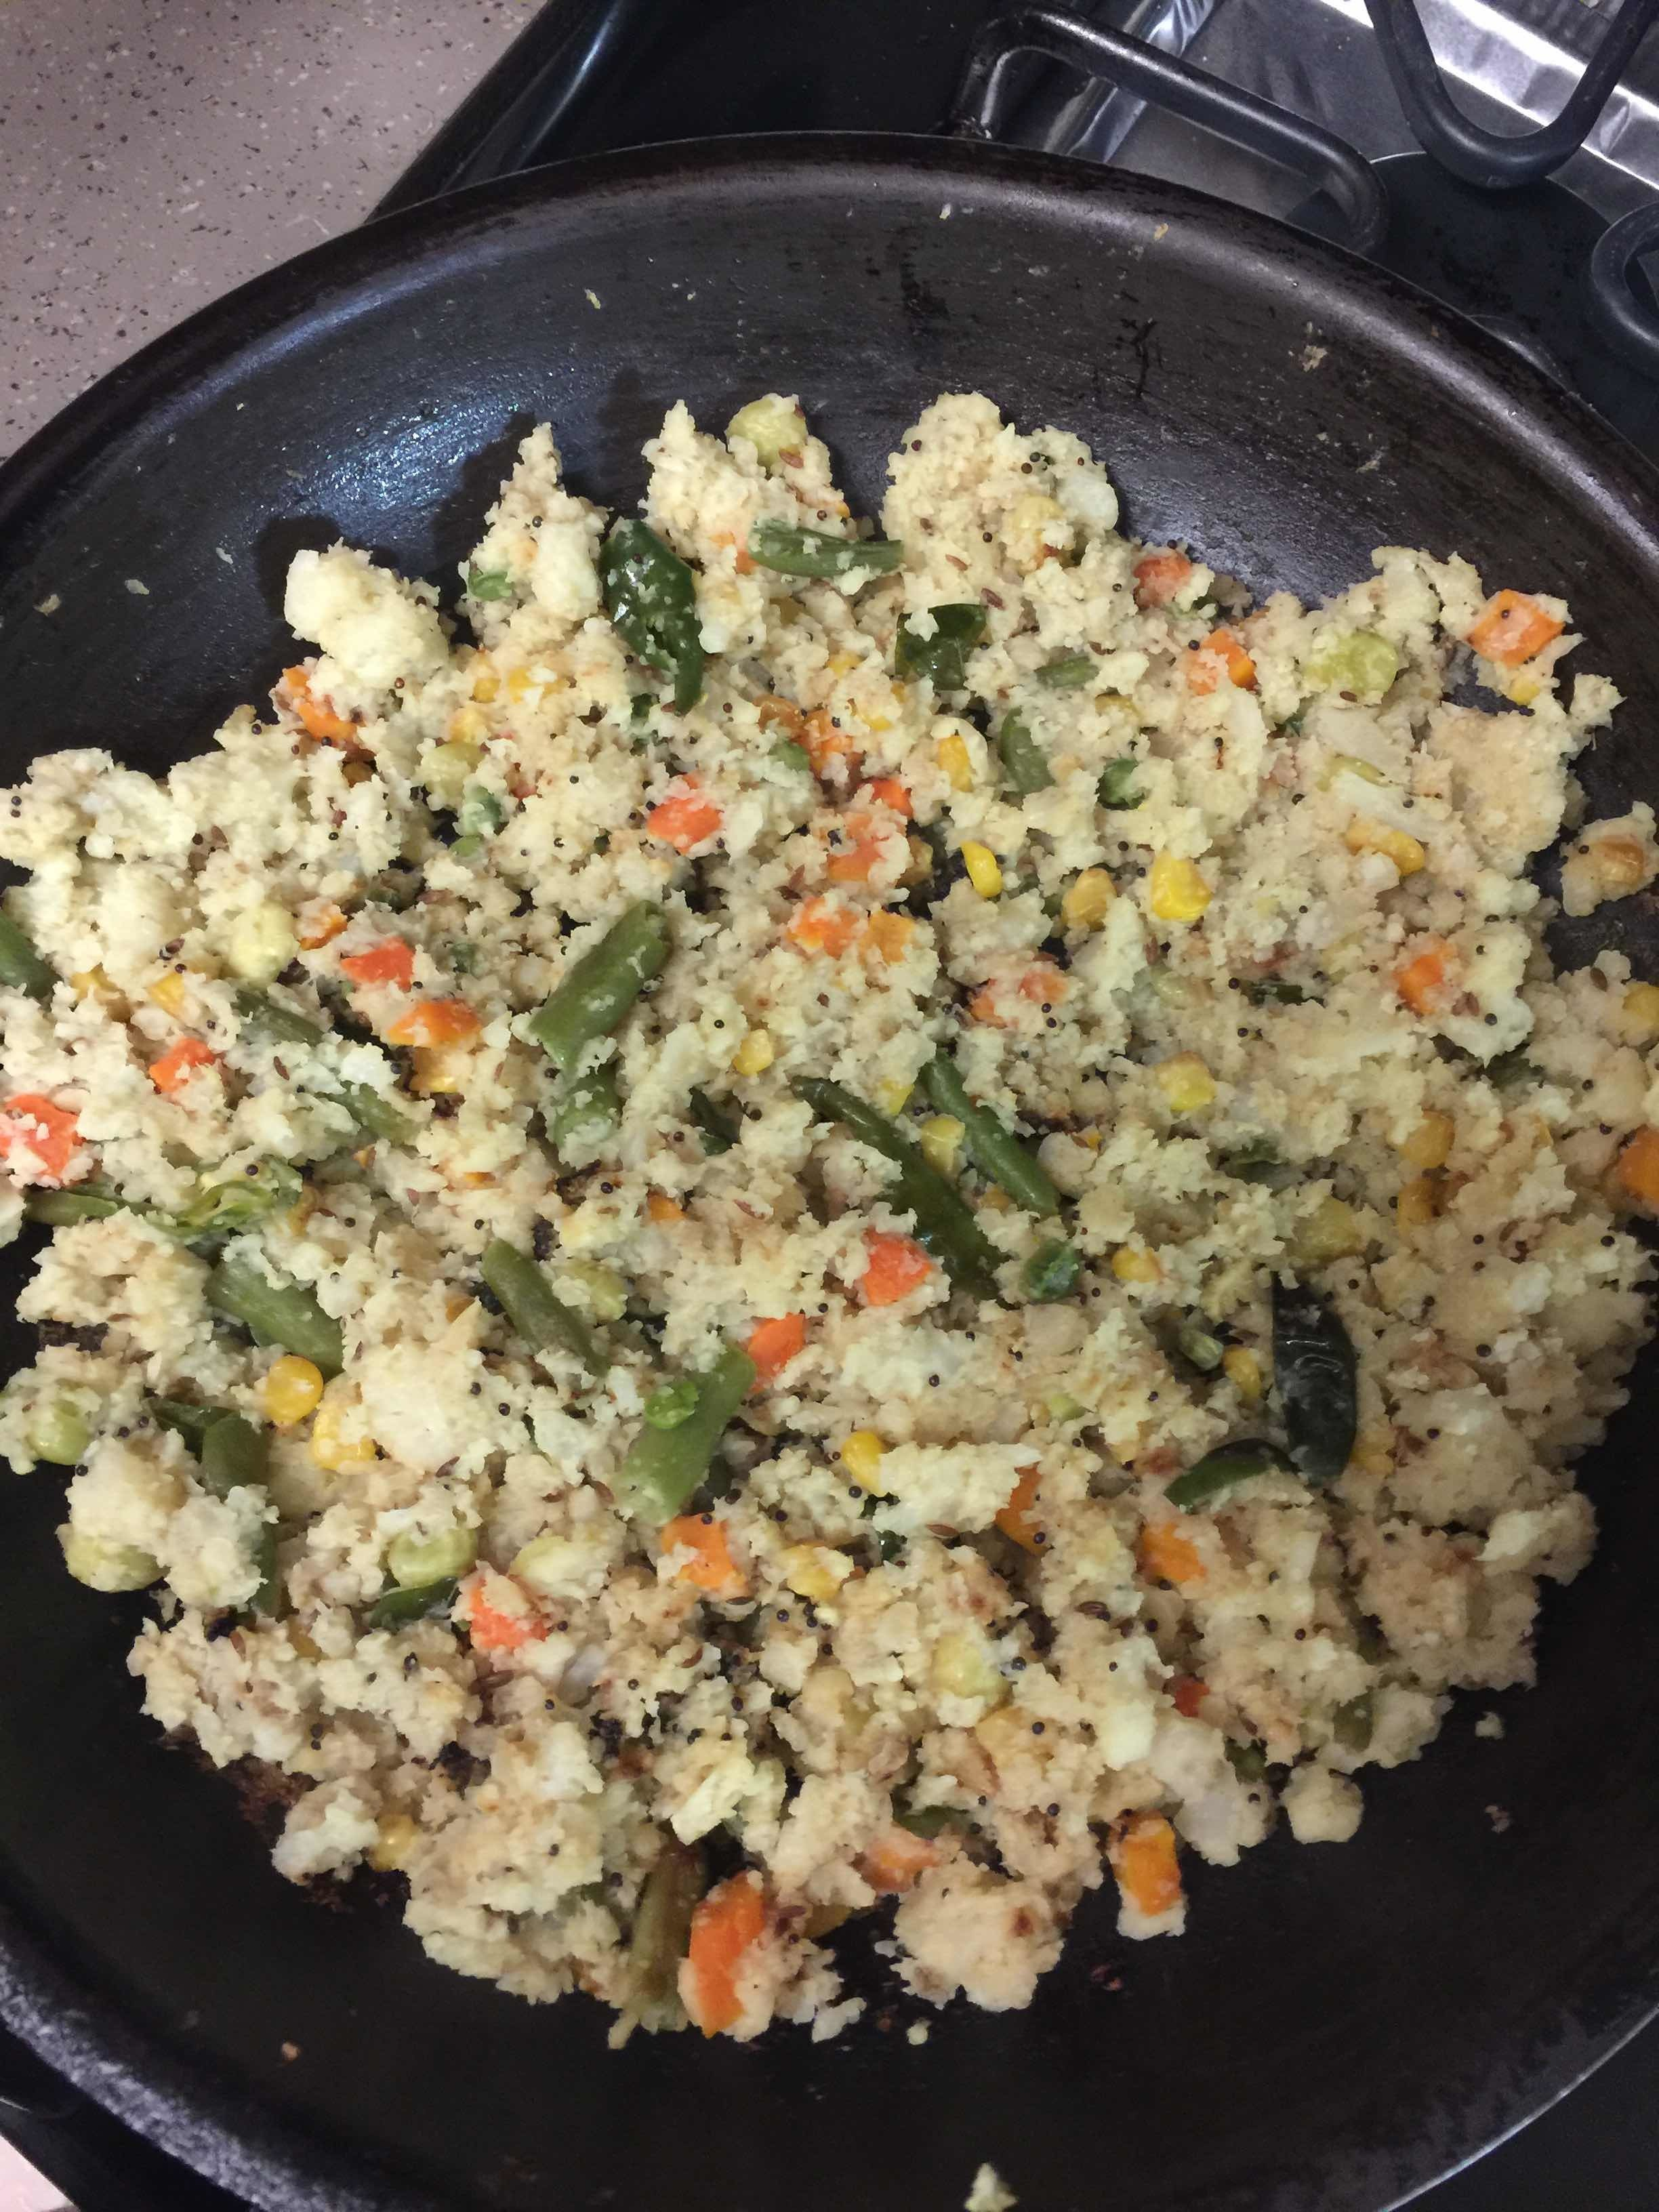 Cali Rice / Cauliflower & mixed veggies rice